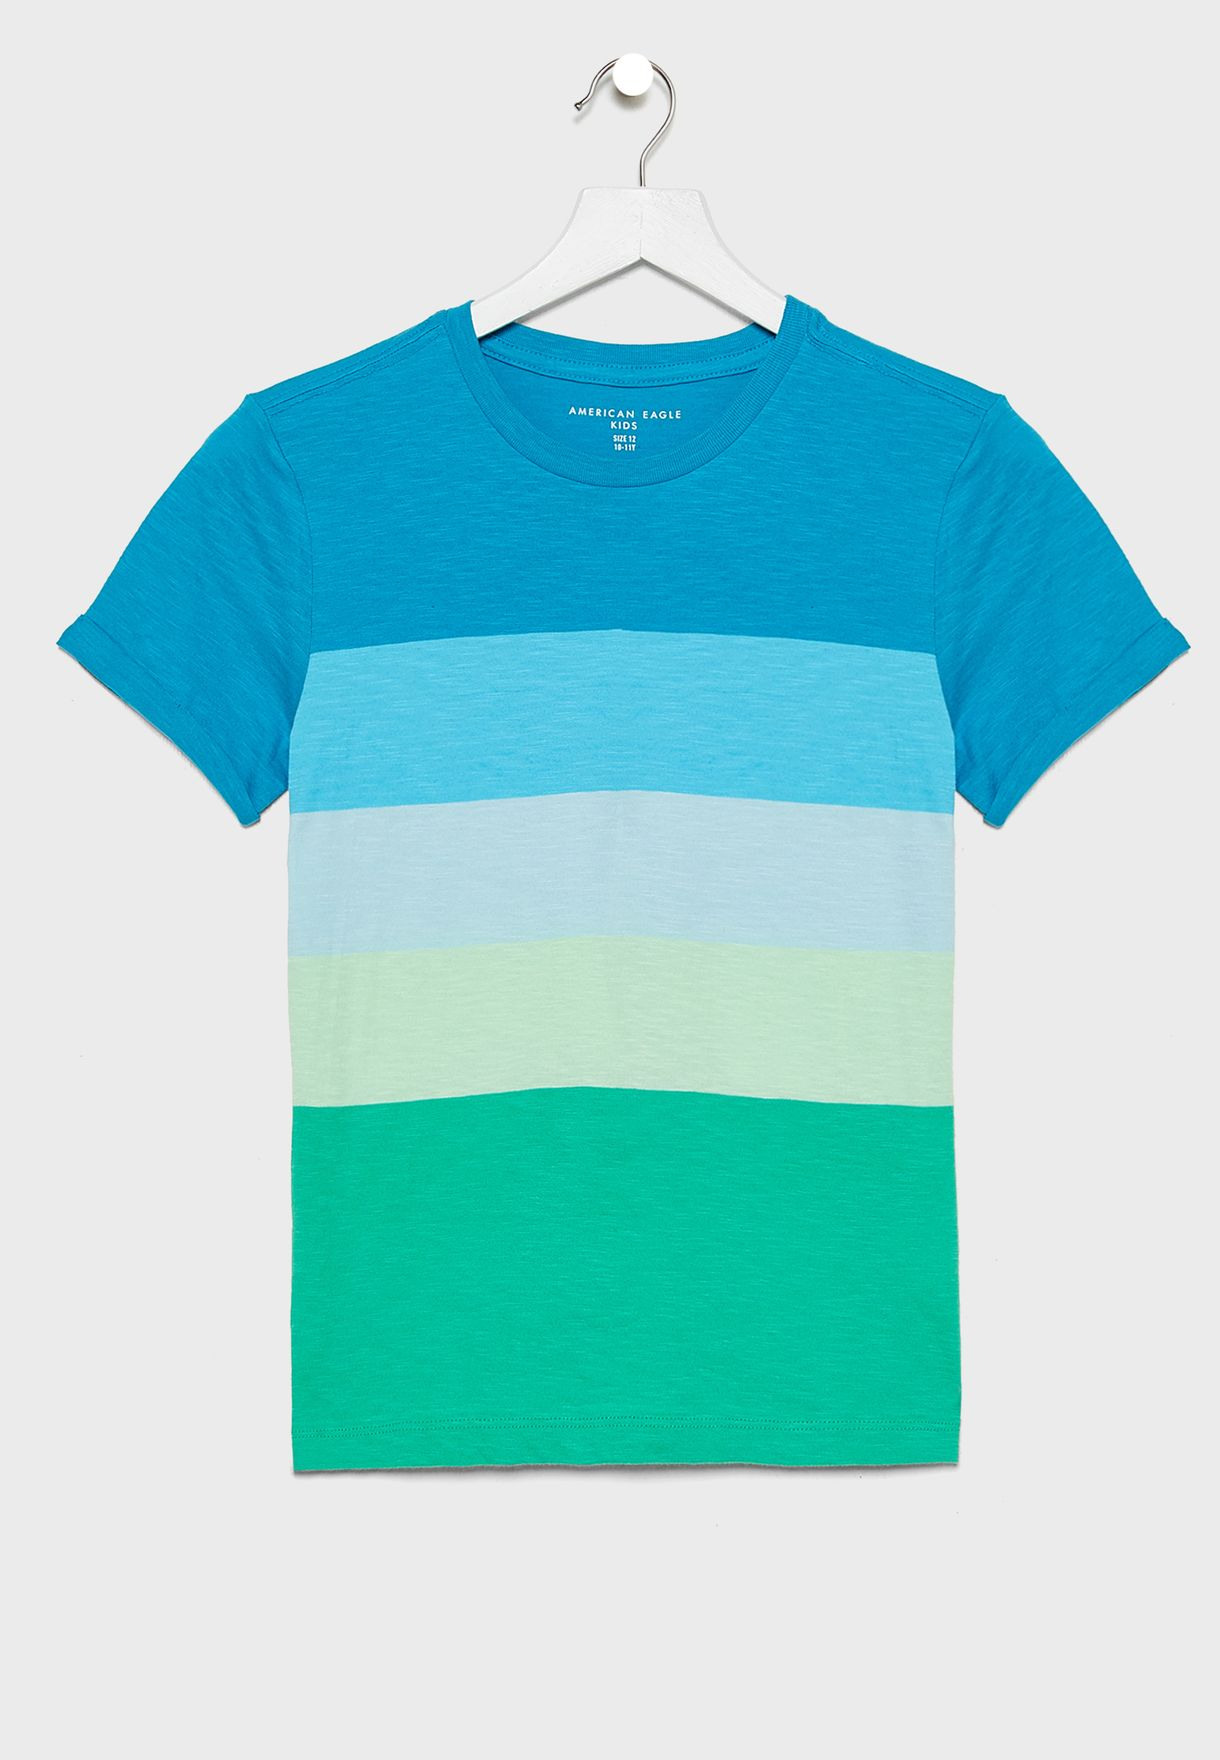 Buy American Eagle Multicolor Kids Color Striped T Shirt For Kids In Mena Worldwide U 0280 6908 300